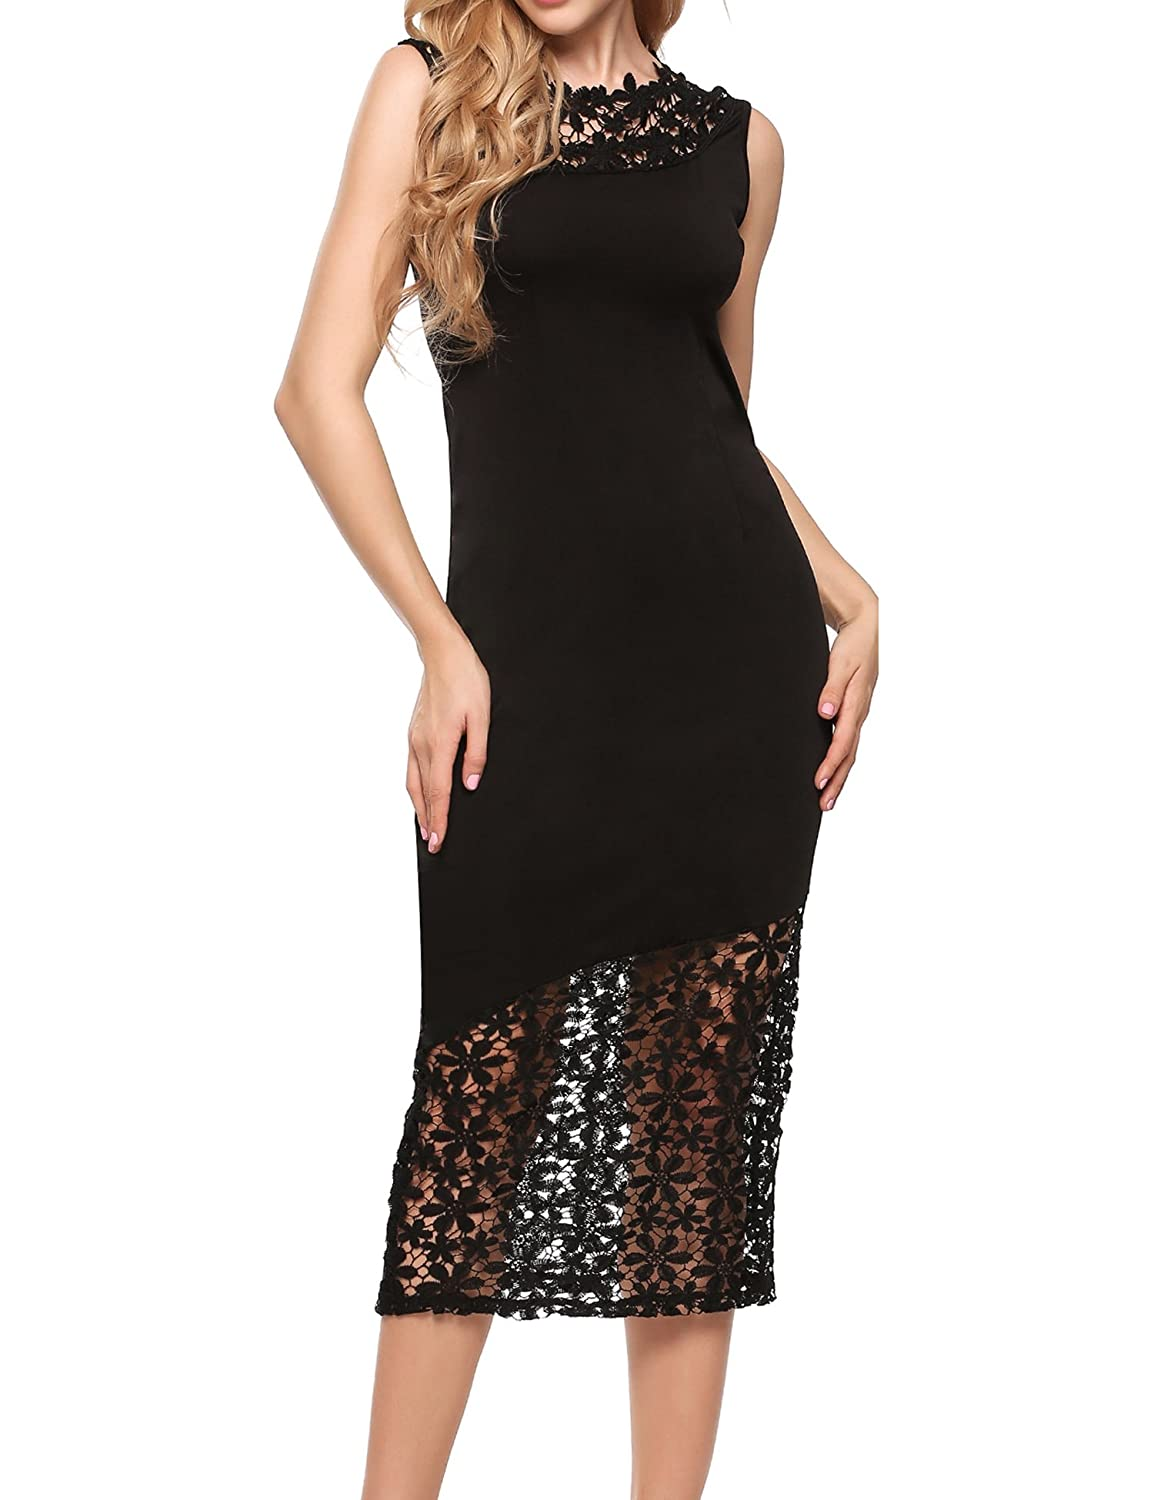 470cad219ea0 ANGVNS Womens Lace Patchwork Floral Sleeveless Cocktail Evening Dress at  Amazon Women's Clothing store: